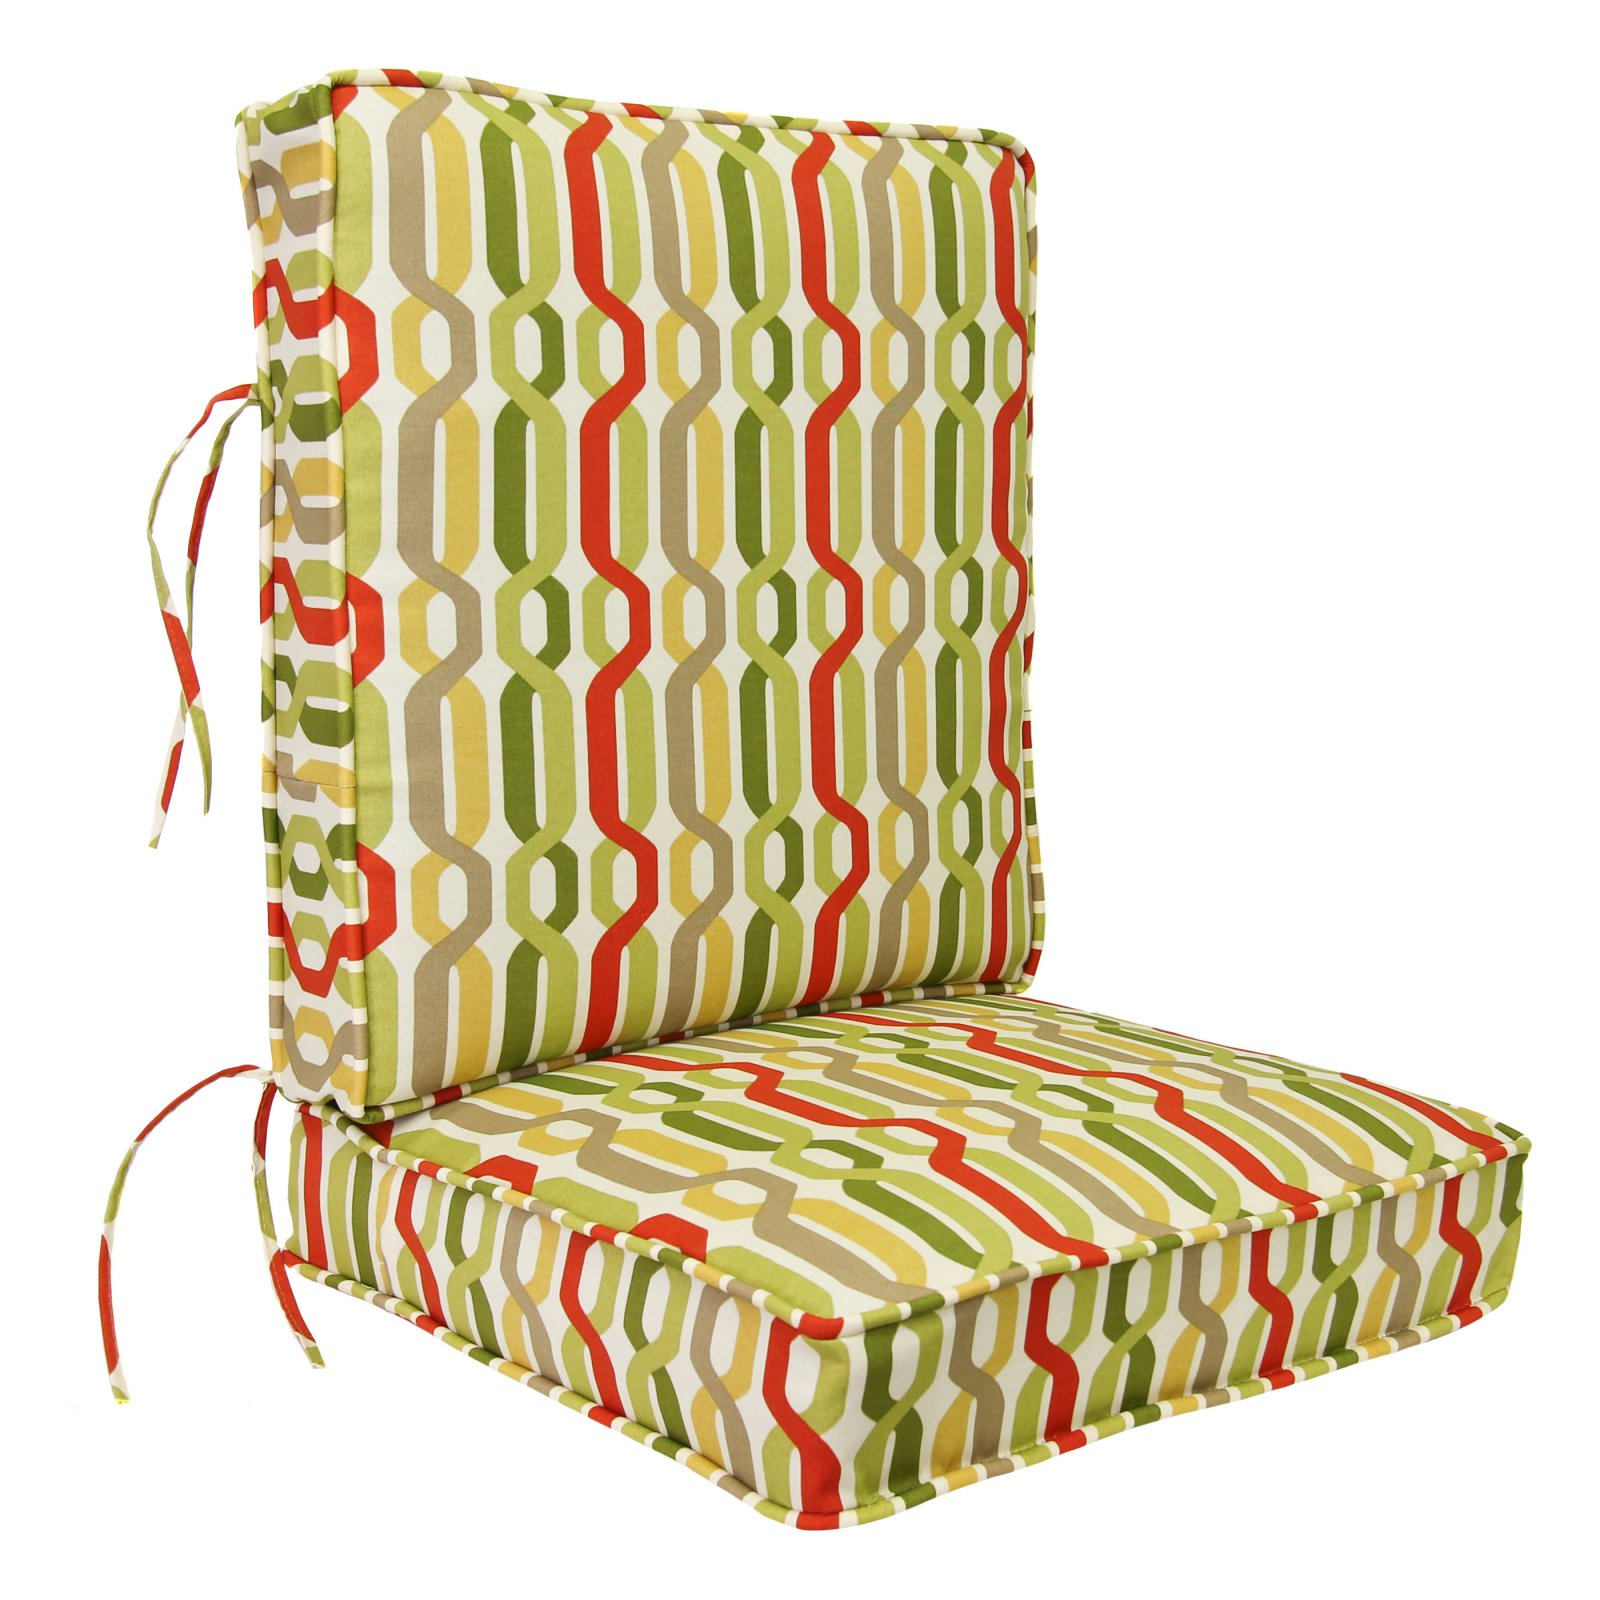 Jordan Manufacturing 24 X 22 5 In Outdoor Boxed Cushion With Cording A New Twist Seaweed